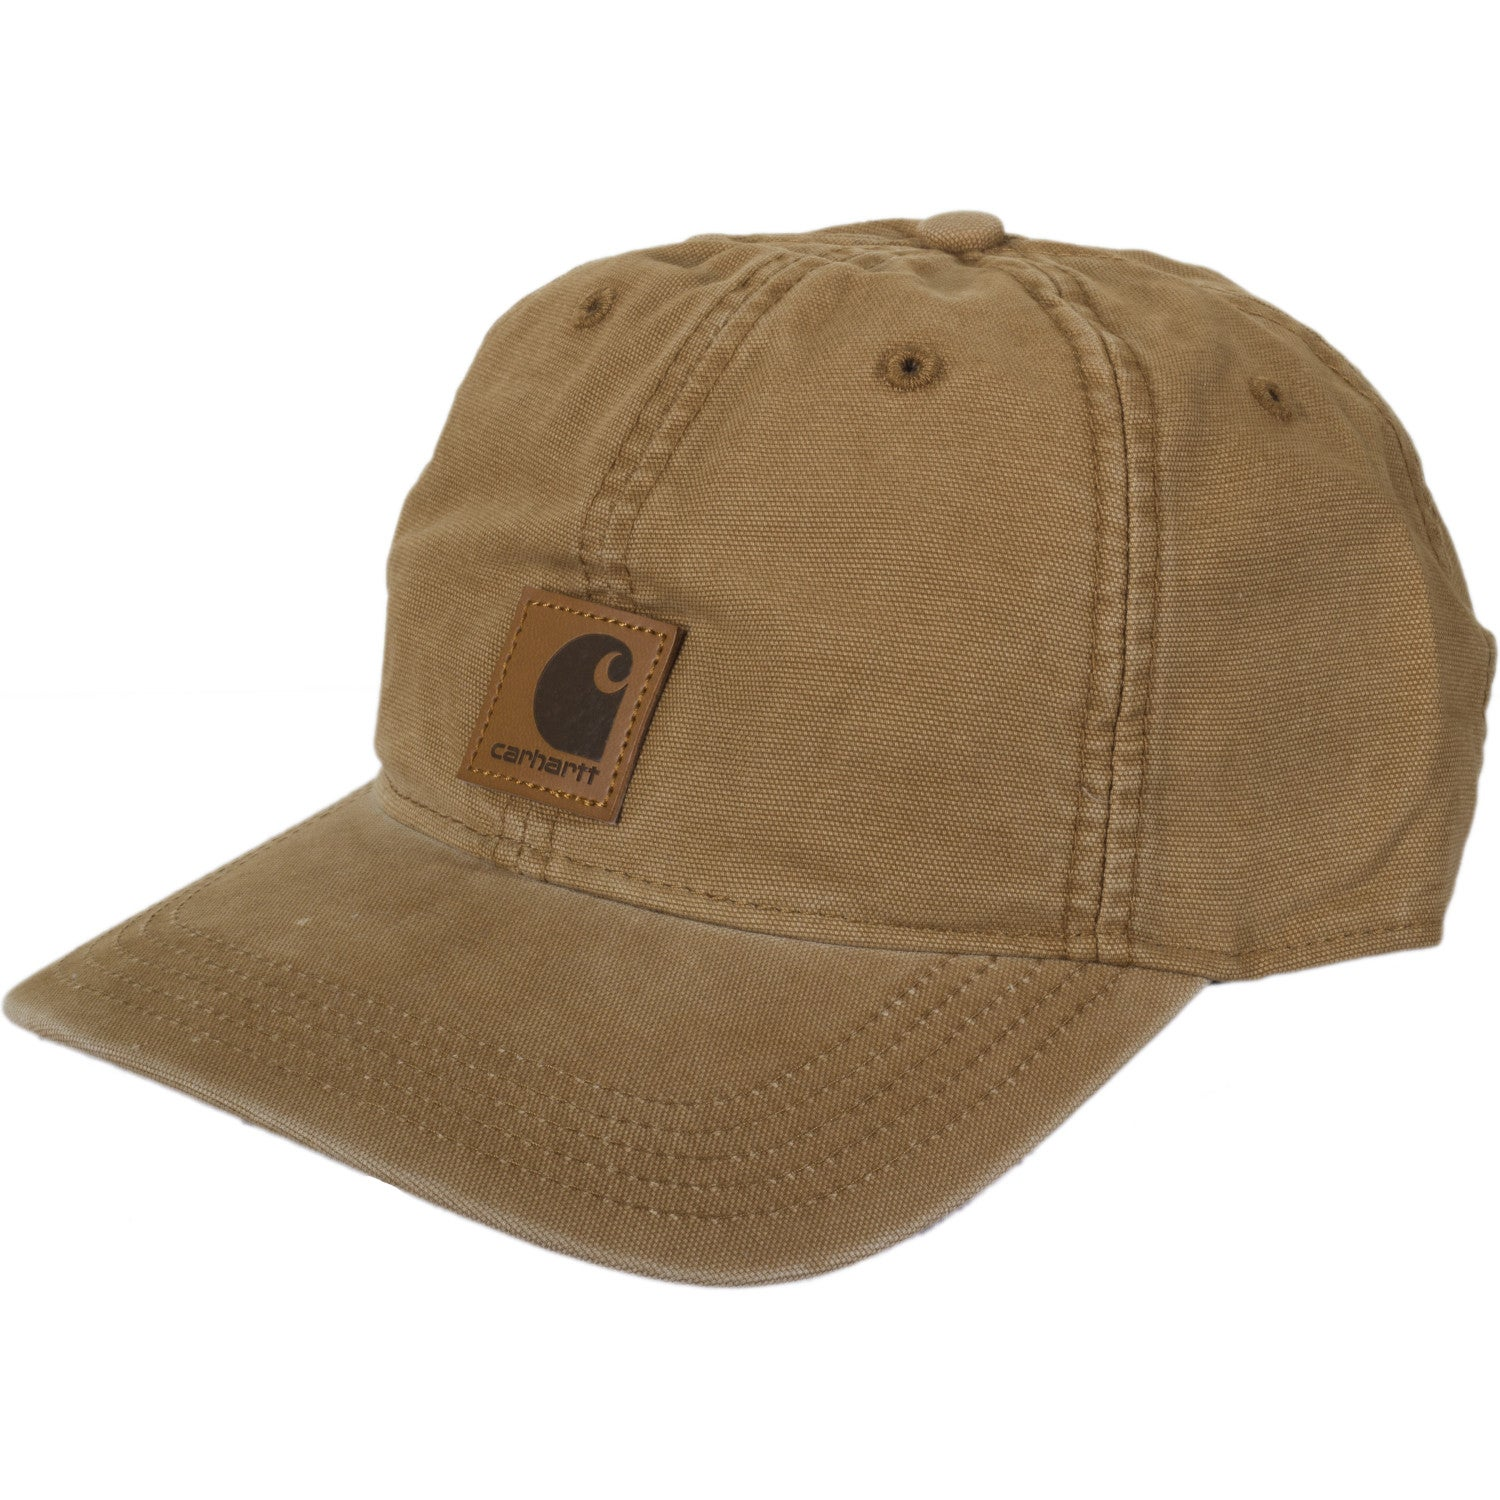 98de1306411 Carhartt Odessa Mens Headwear Cap - Brown One Size